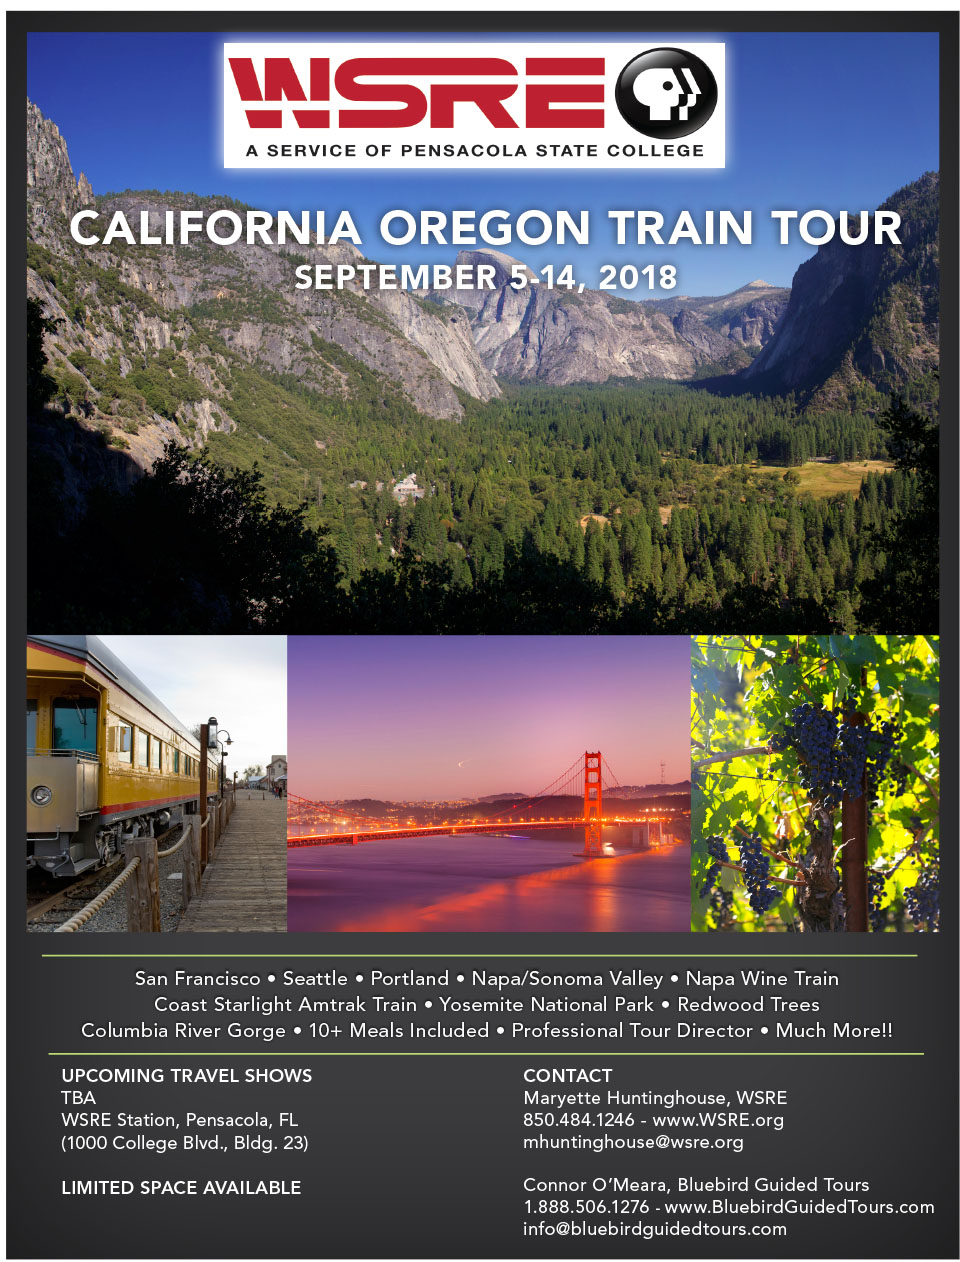 WSRE California Oregon Brochure 2018.jpg